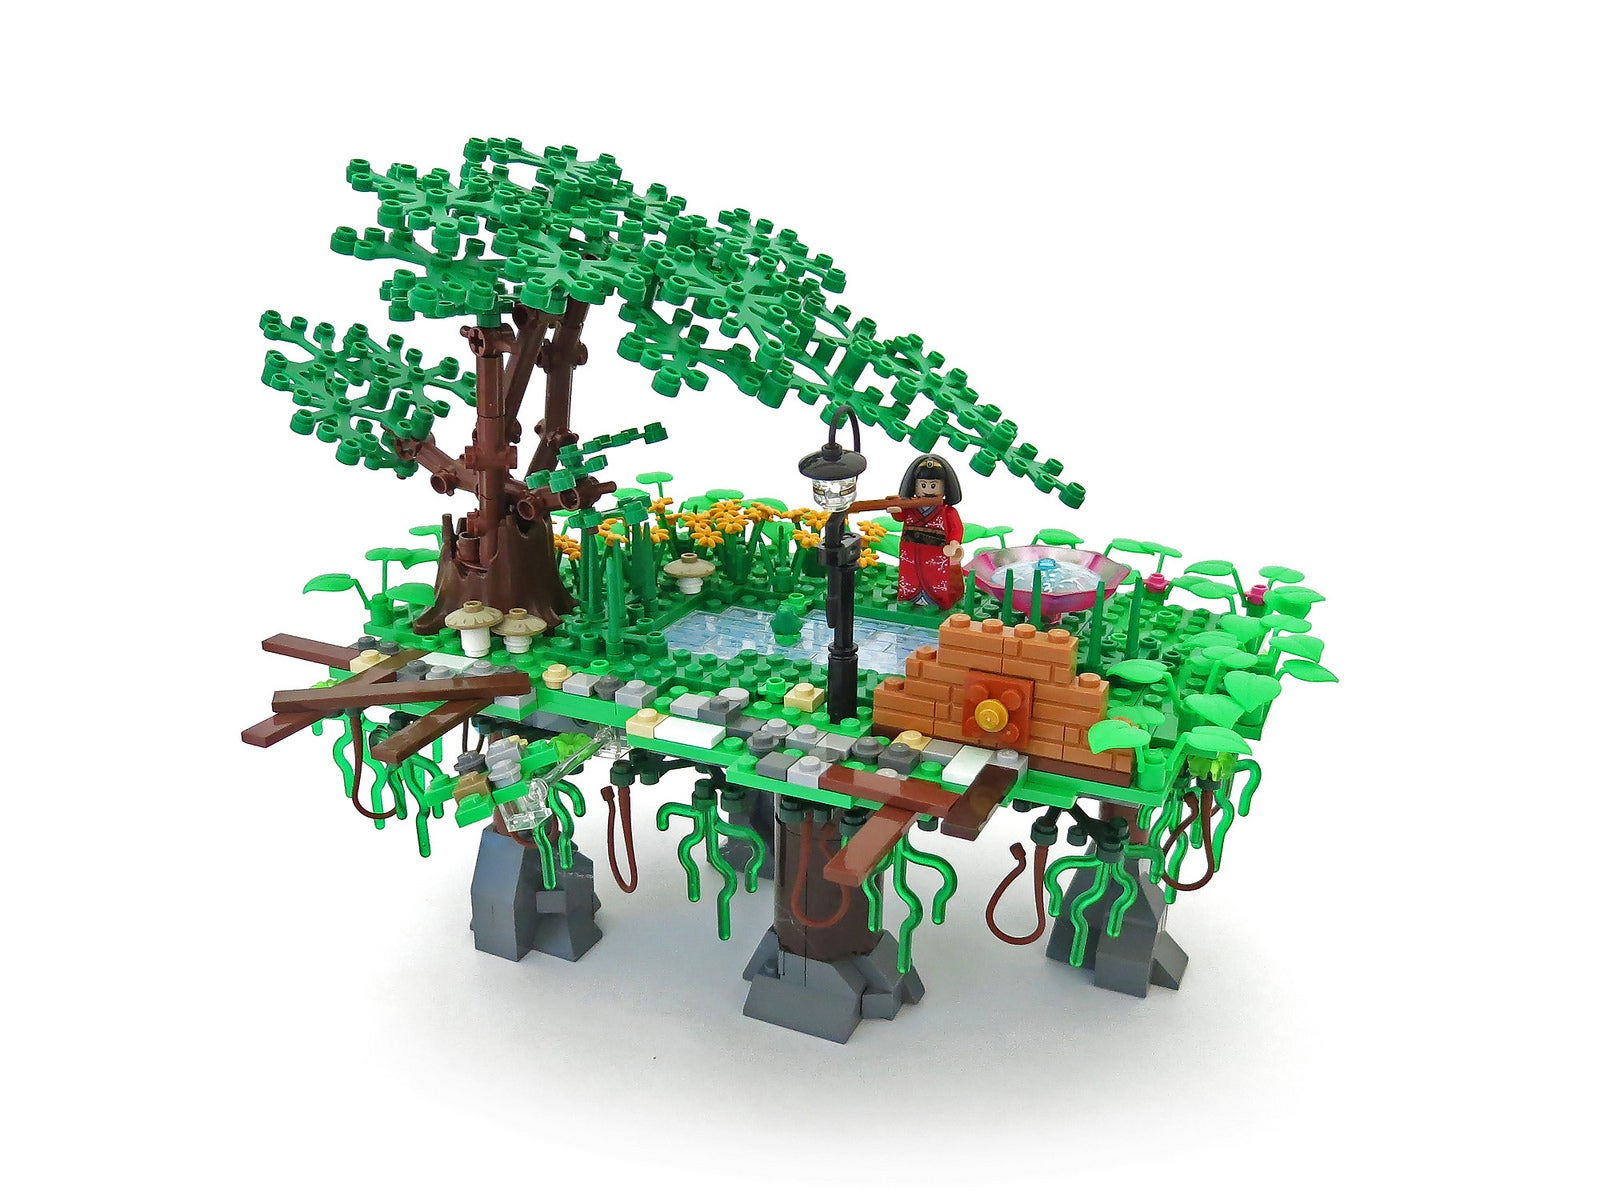 This Bastion-Inspired LEGO World Deserves Its Own Game